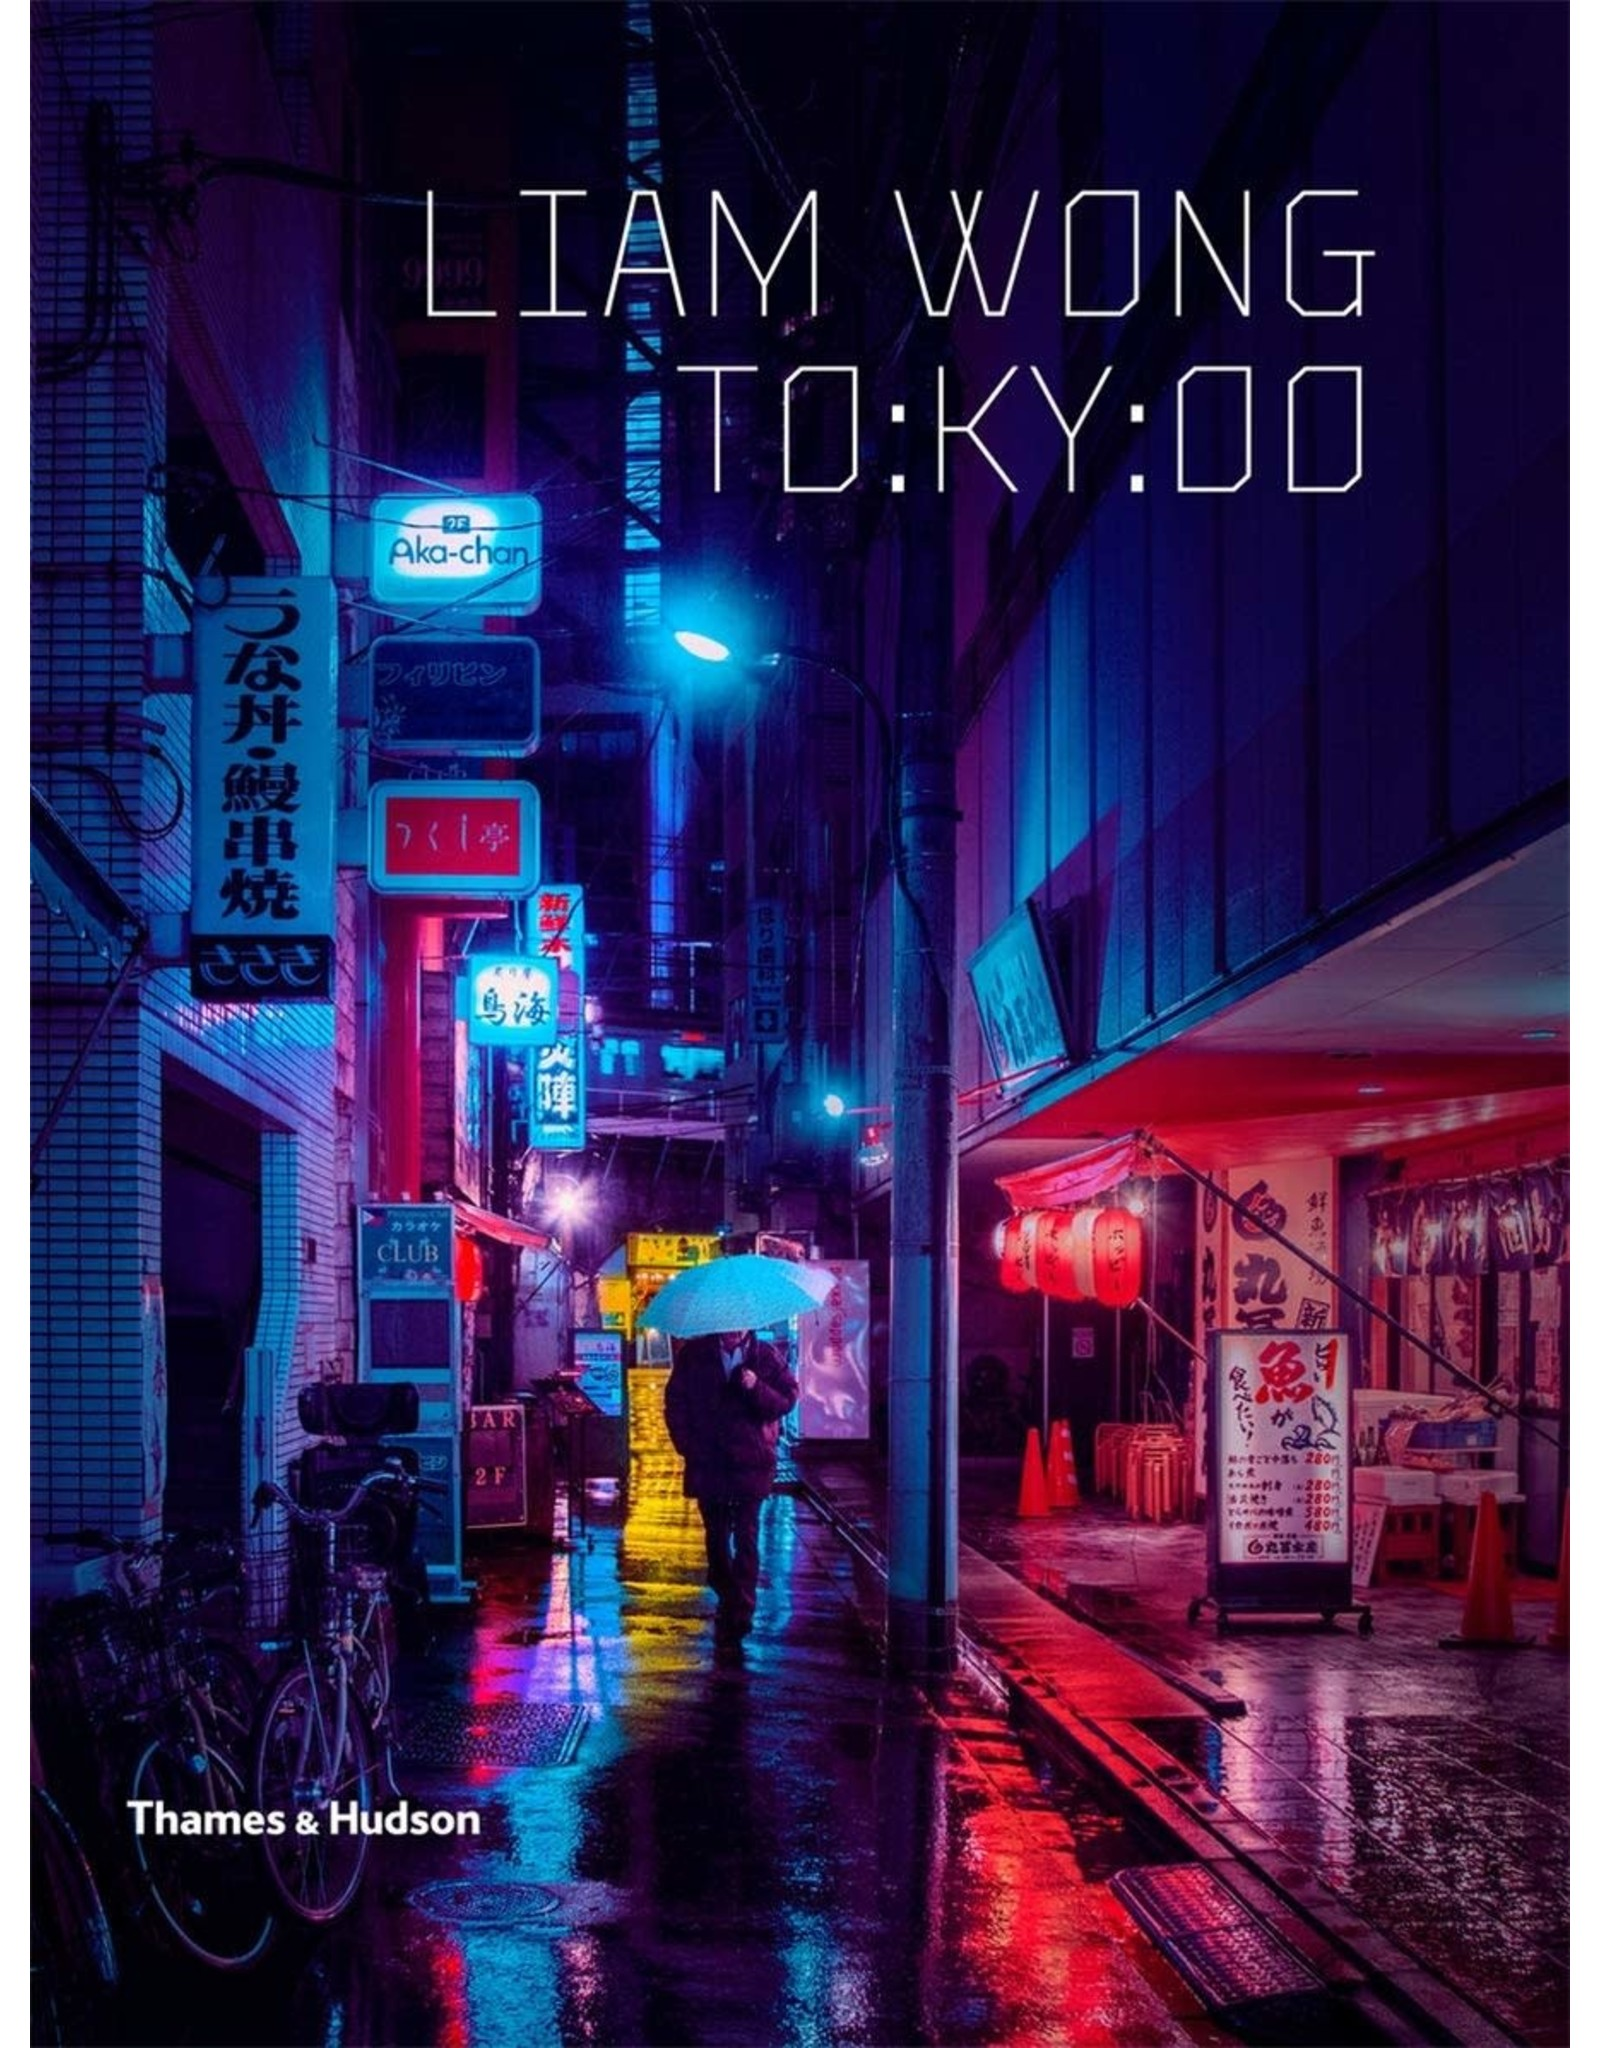 TO:KY:OO - Liam Wong - Paperback (English)